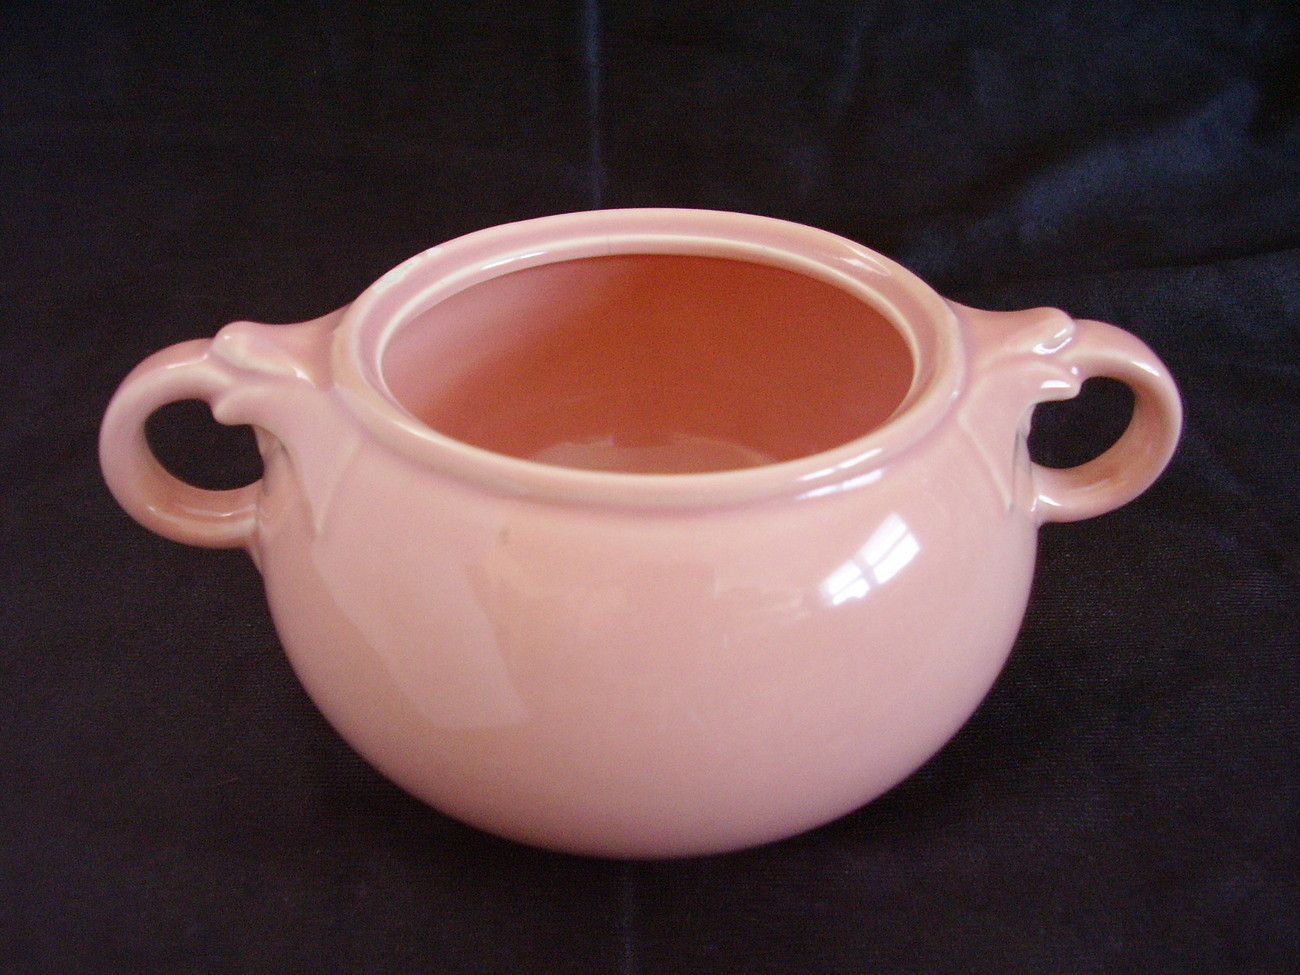 Lu Ray Pastel Pink Sugar Bowl No Lid Made in USA